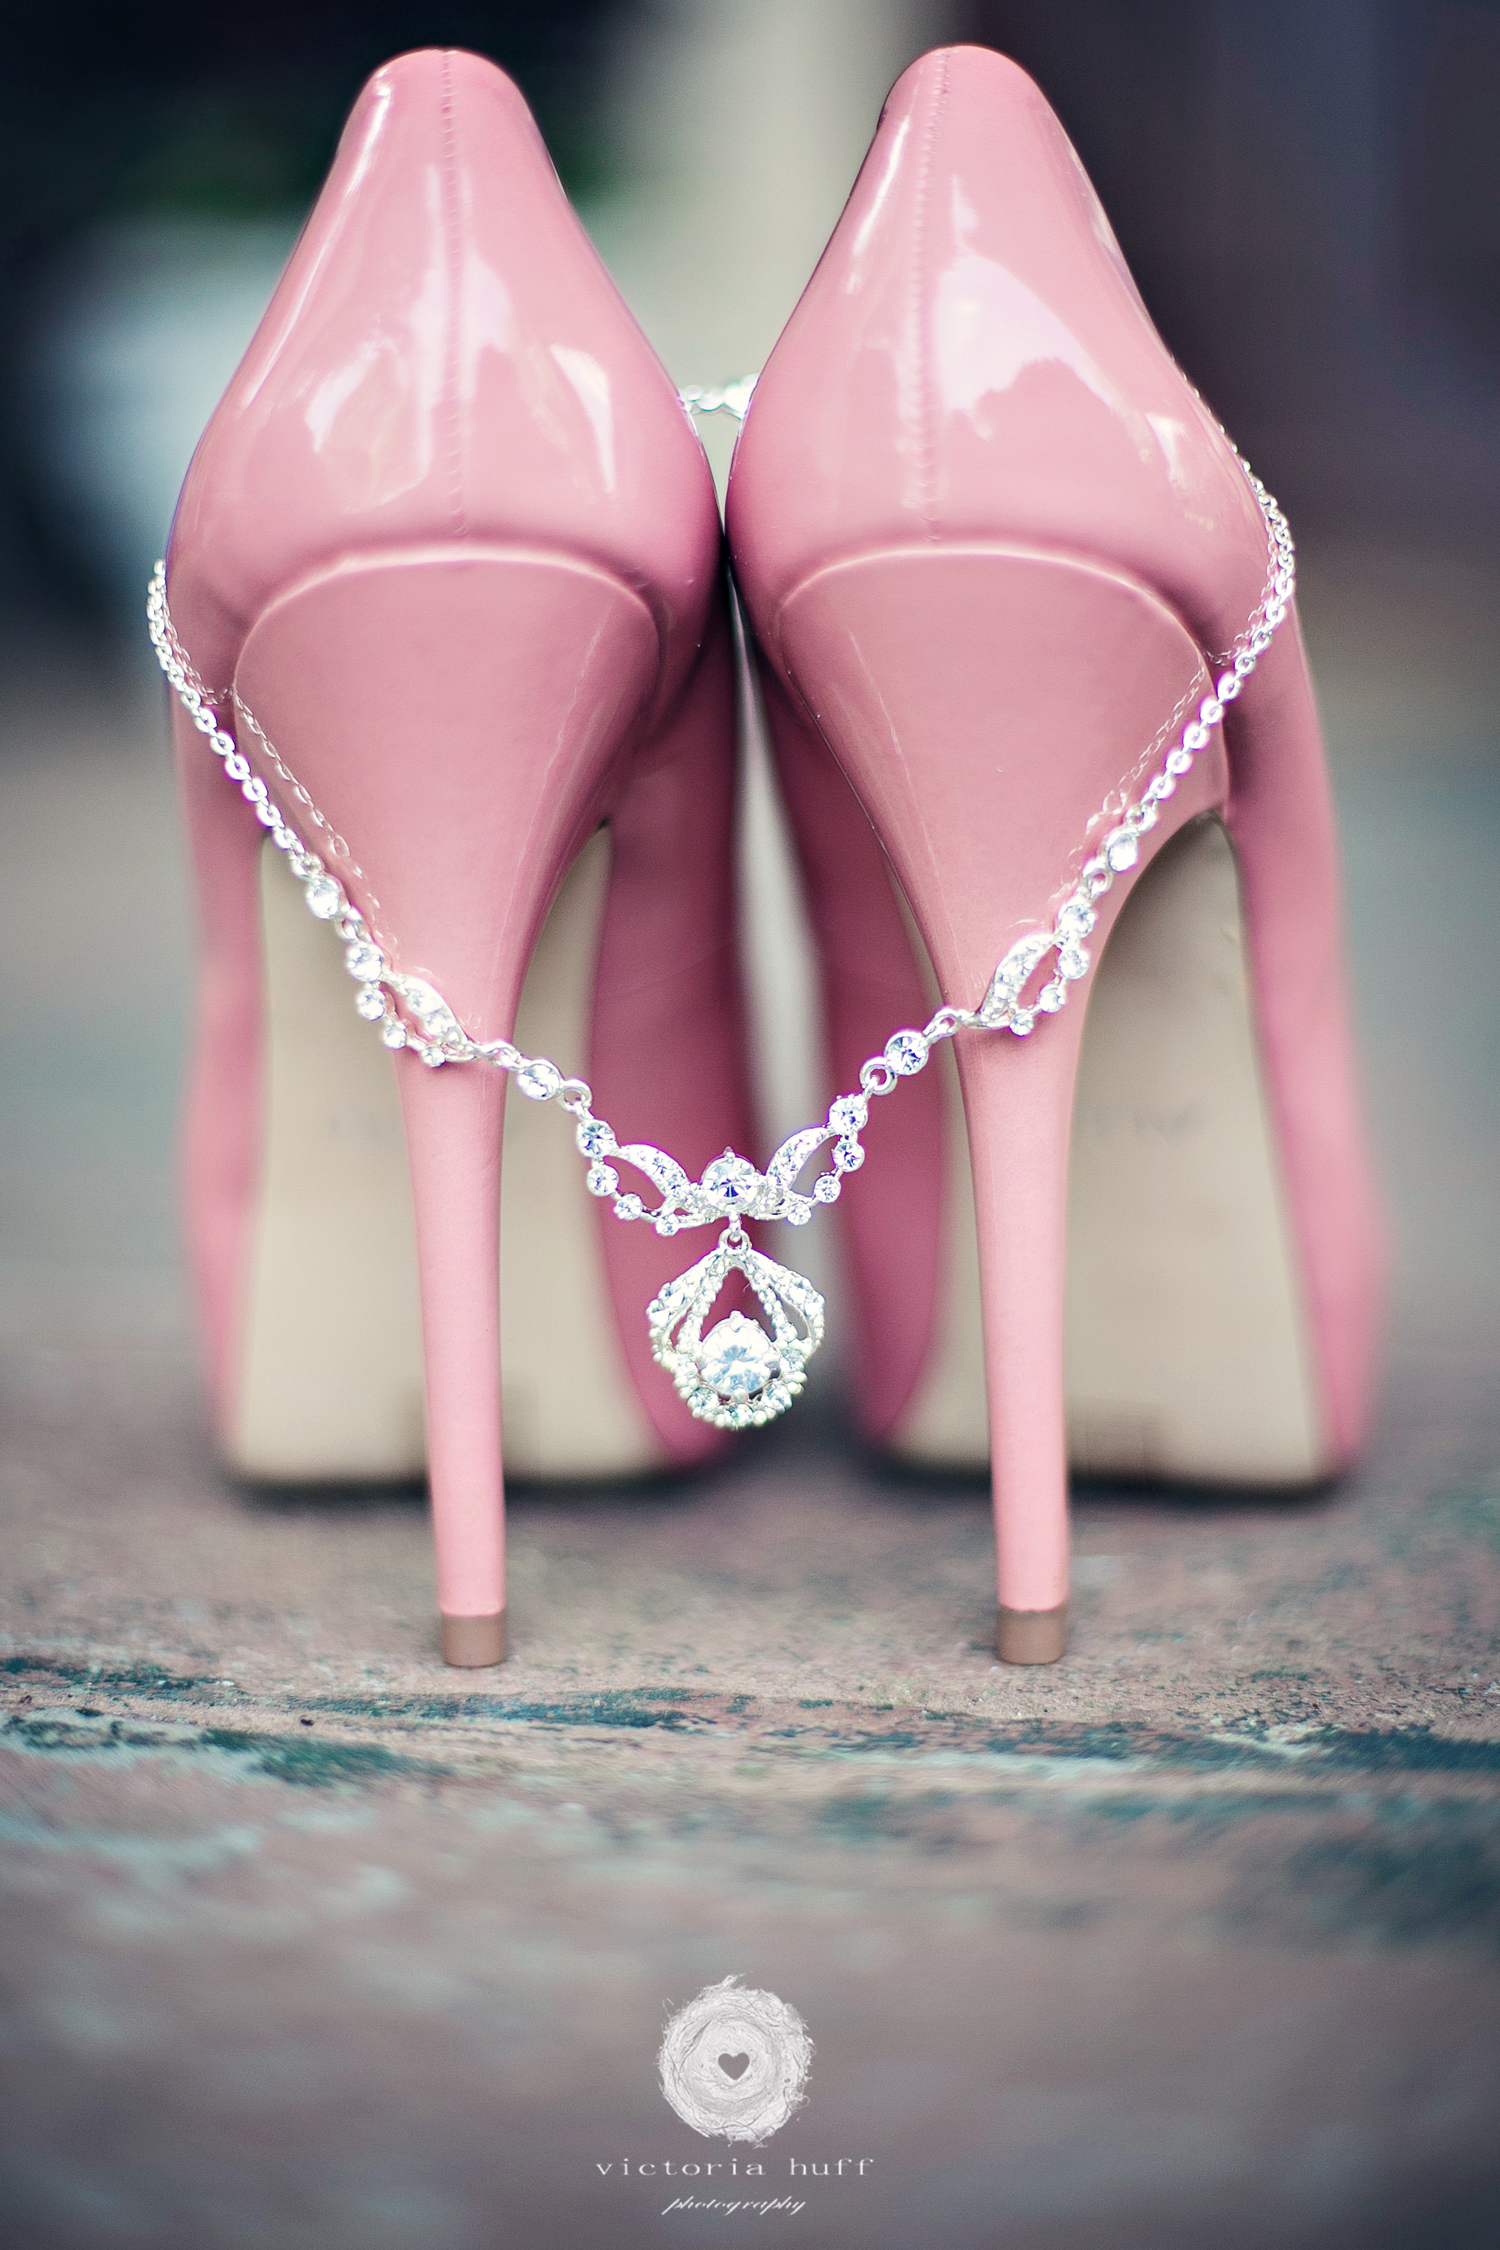 Wedding-Photography-Lisa-Dianetti-Ben-Swafford-Atlanta-Georgia-Little-Five-Points-Freedom-Park-Pink-Shoes-Diamond-Necklace.jpg